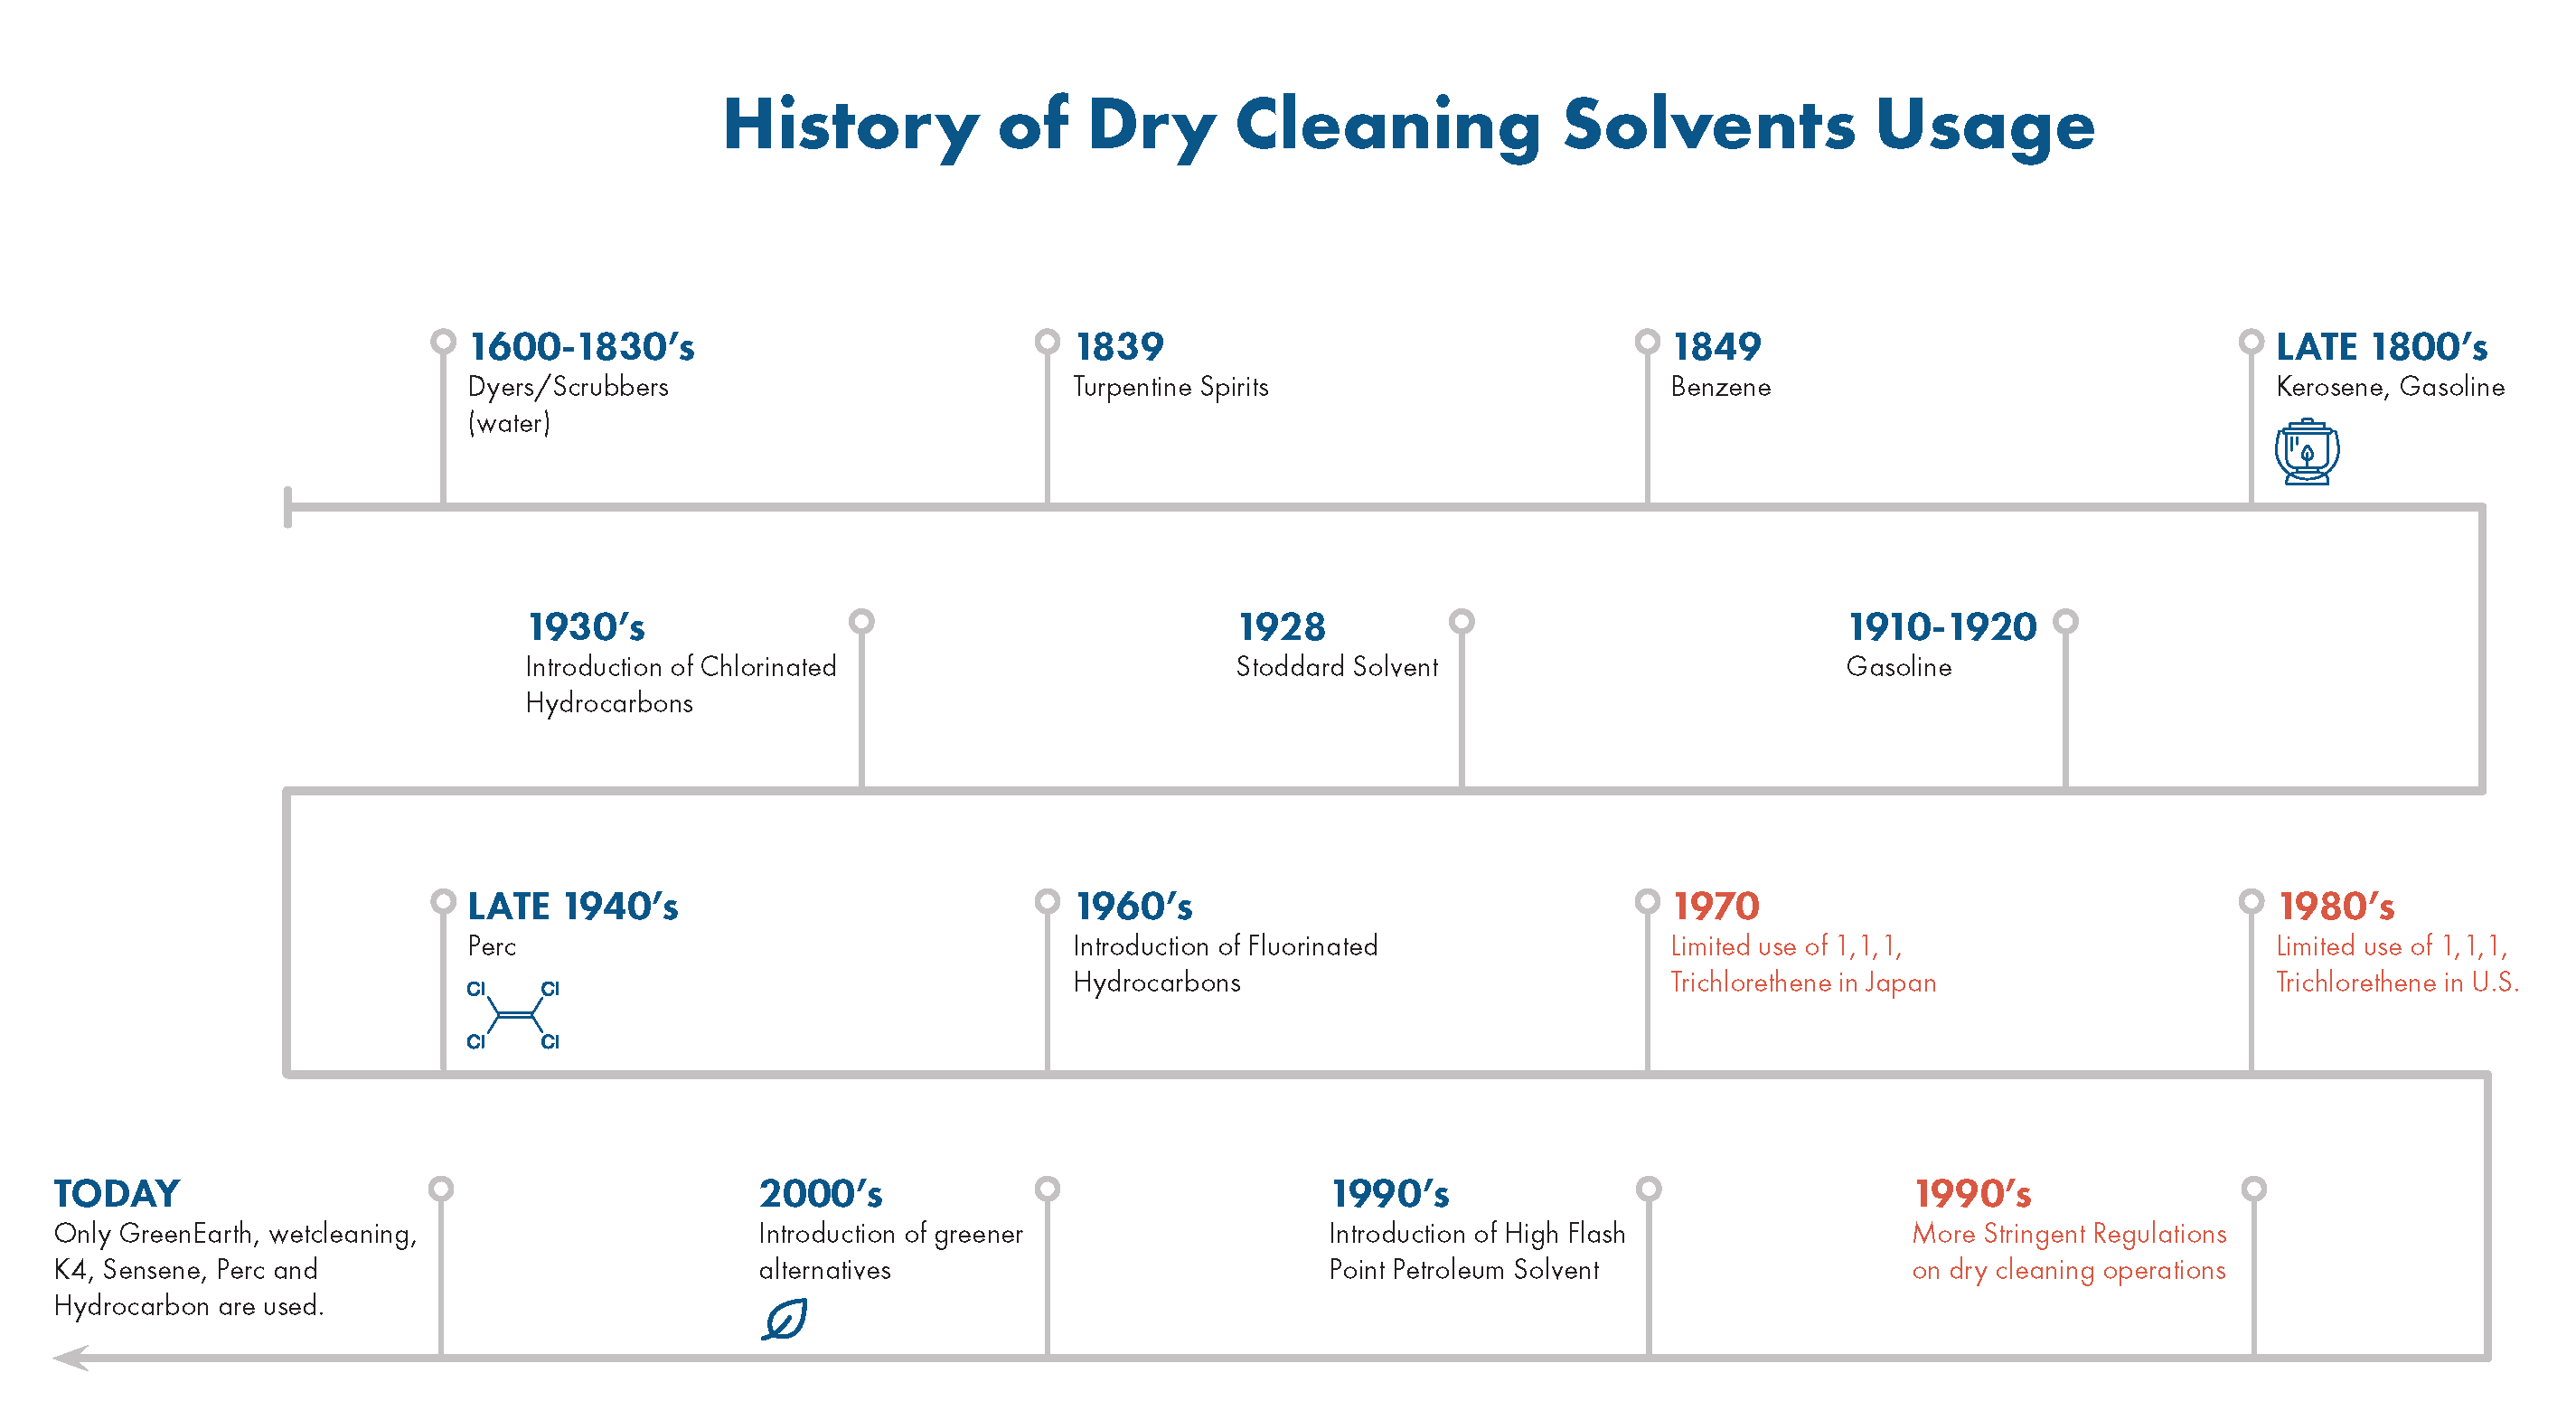 Timeline of drycleaning solvent usage between 1600 and today